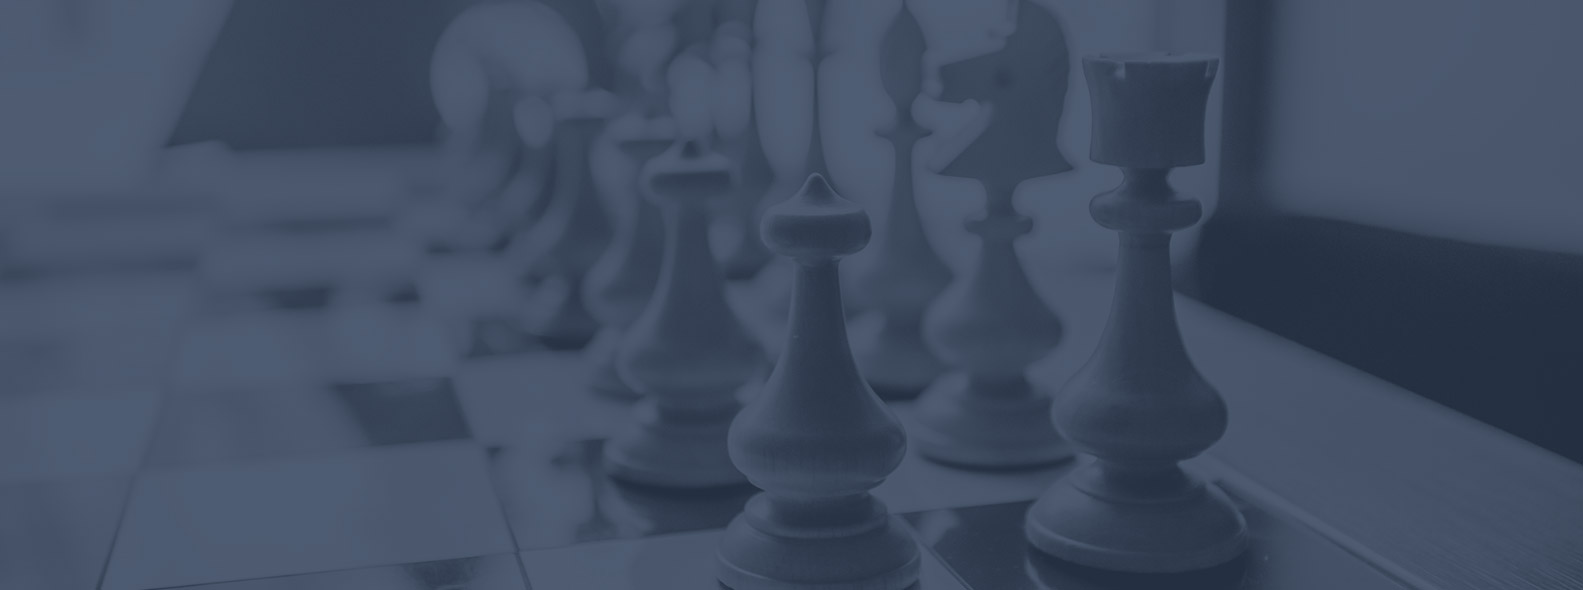 Chess pieces representing Due Diligence services help your construction company maximizing changes in regulation